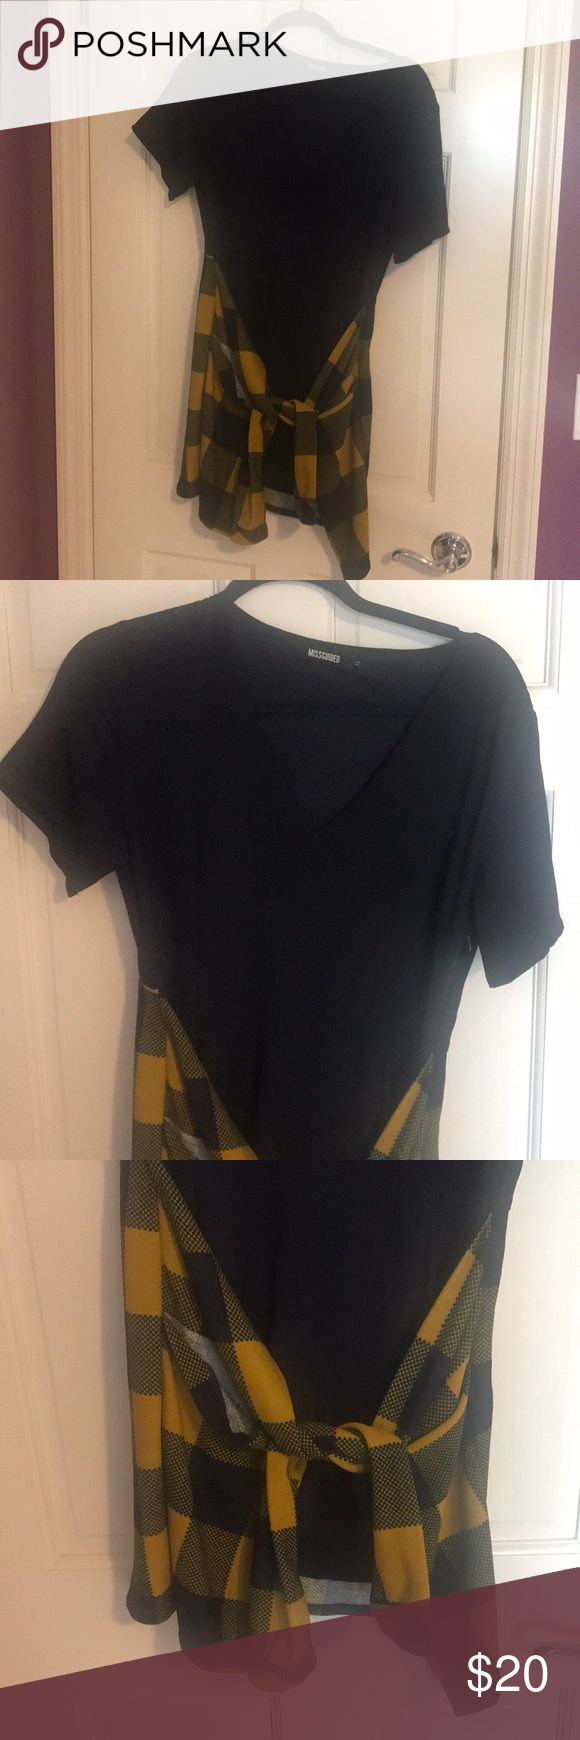 Missguided Dress with Mock Wrap Plaid Shirt Navy Missguided dress with Mock wrap plaid shirt in navy and mustard yellow. Comfy baggy fit. Barely worn. size 12. Missguided Dresses Mini